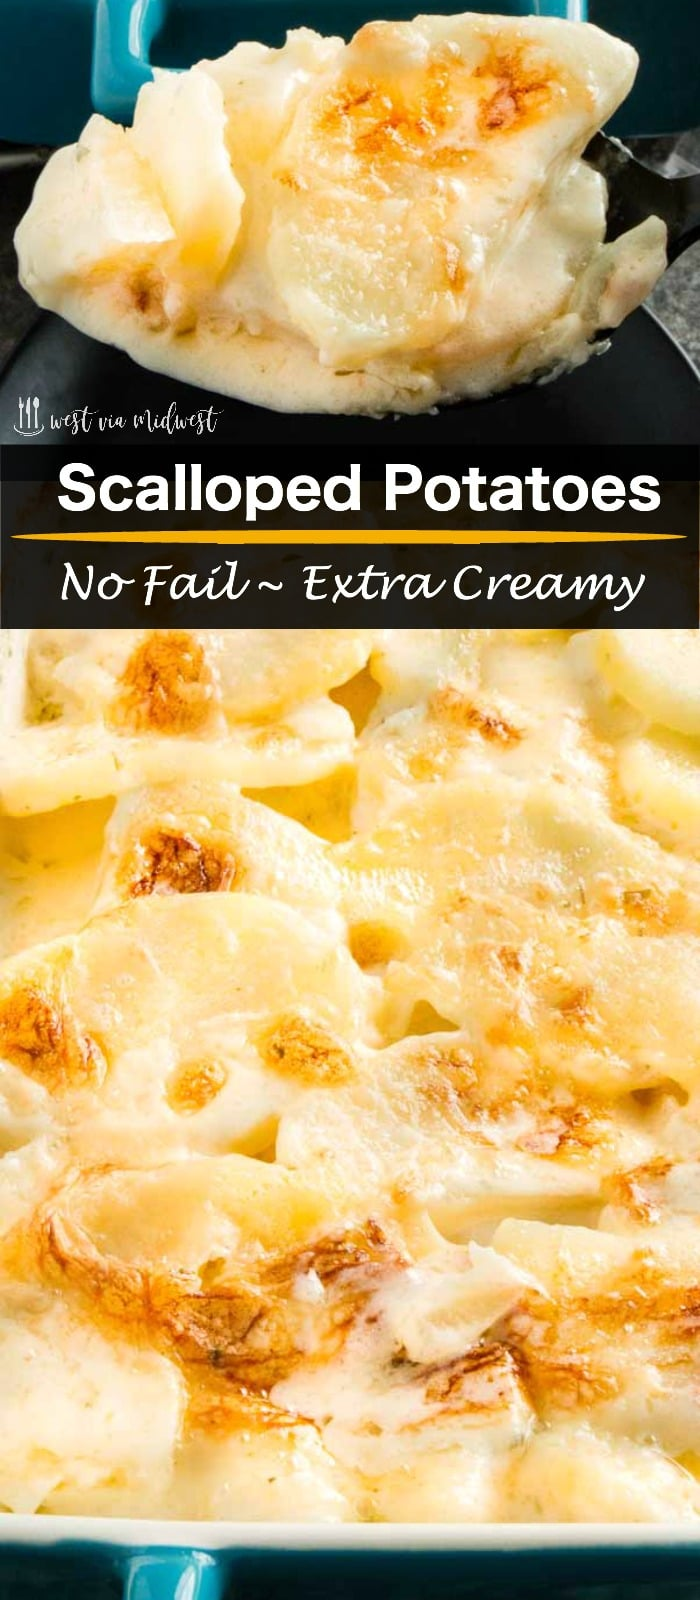 This extra creamy, easy scalloped potatoes recipe is the easiest side dish ever. Thick velvety sauce surrounds perfectly cooked potatoes. Ideal for entertaining because you can make them ahead and just warm them to serve them.#sidedish #scallopedpotatoes www.westviamidwest.com